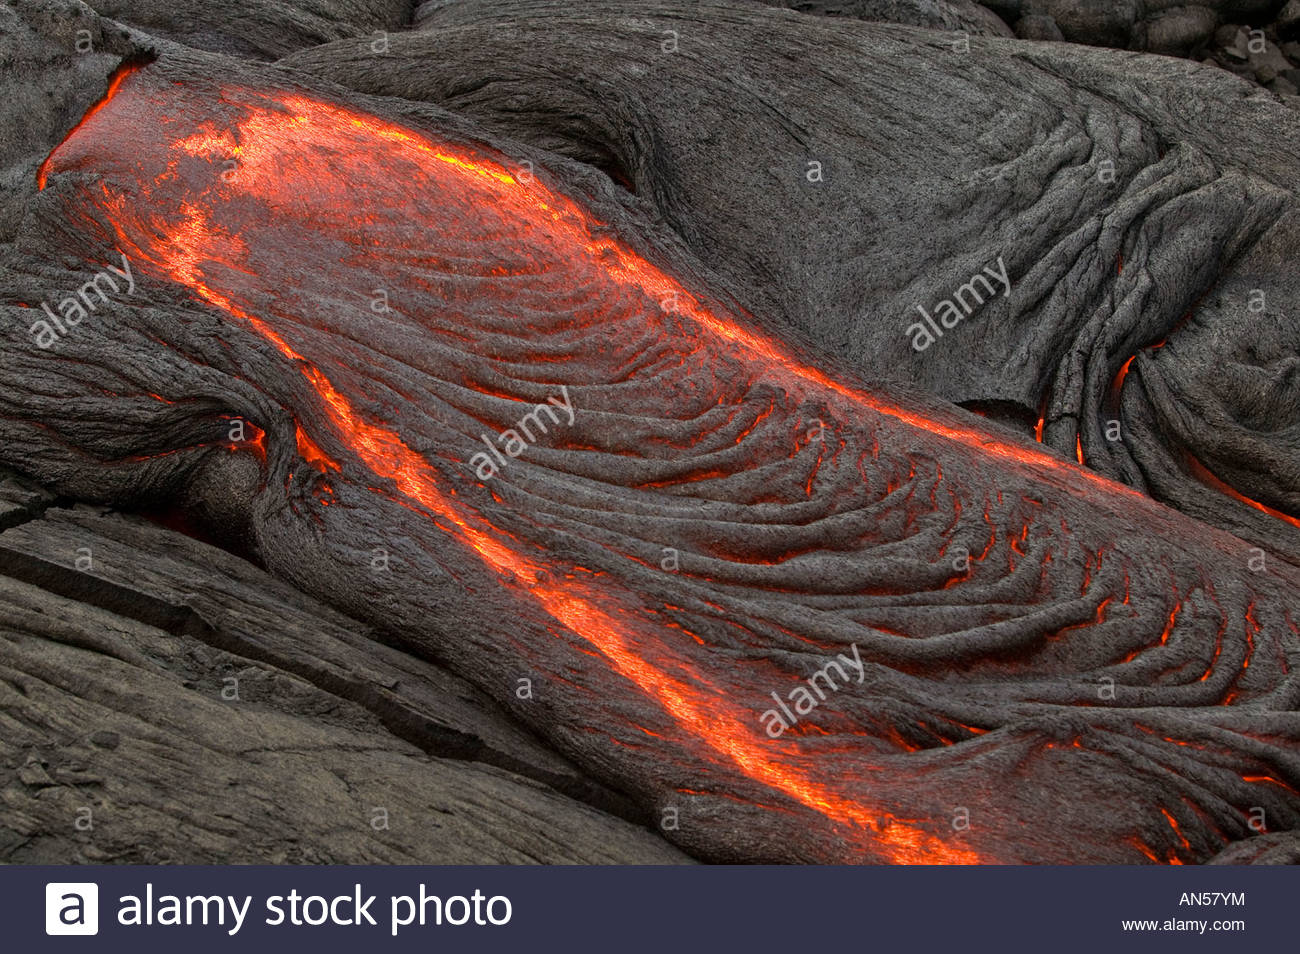 Molten pahoehoe lava flows at the end of a lava tube from the Pu`u O`o Kila vent in Volcanoes National Park on Hawaii. - Stock Image